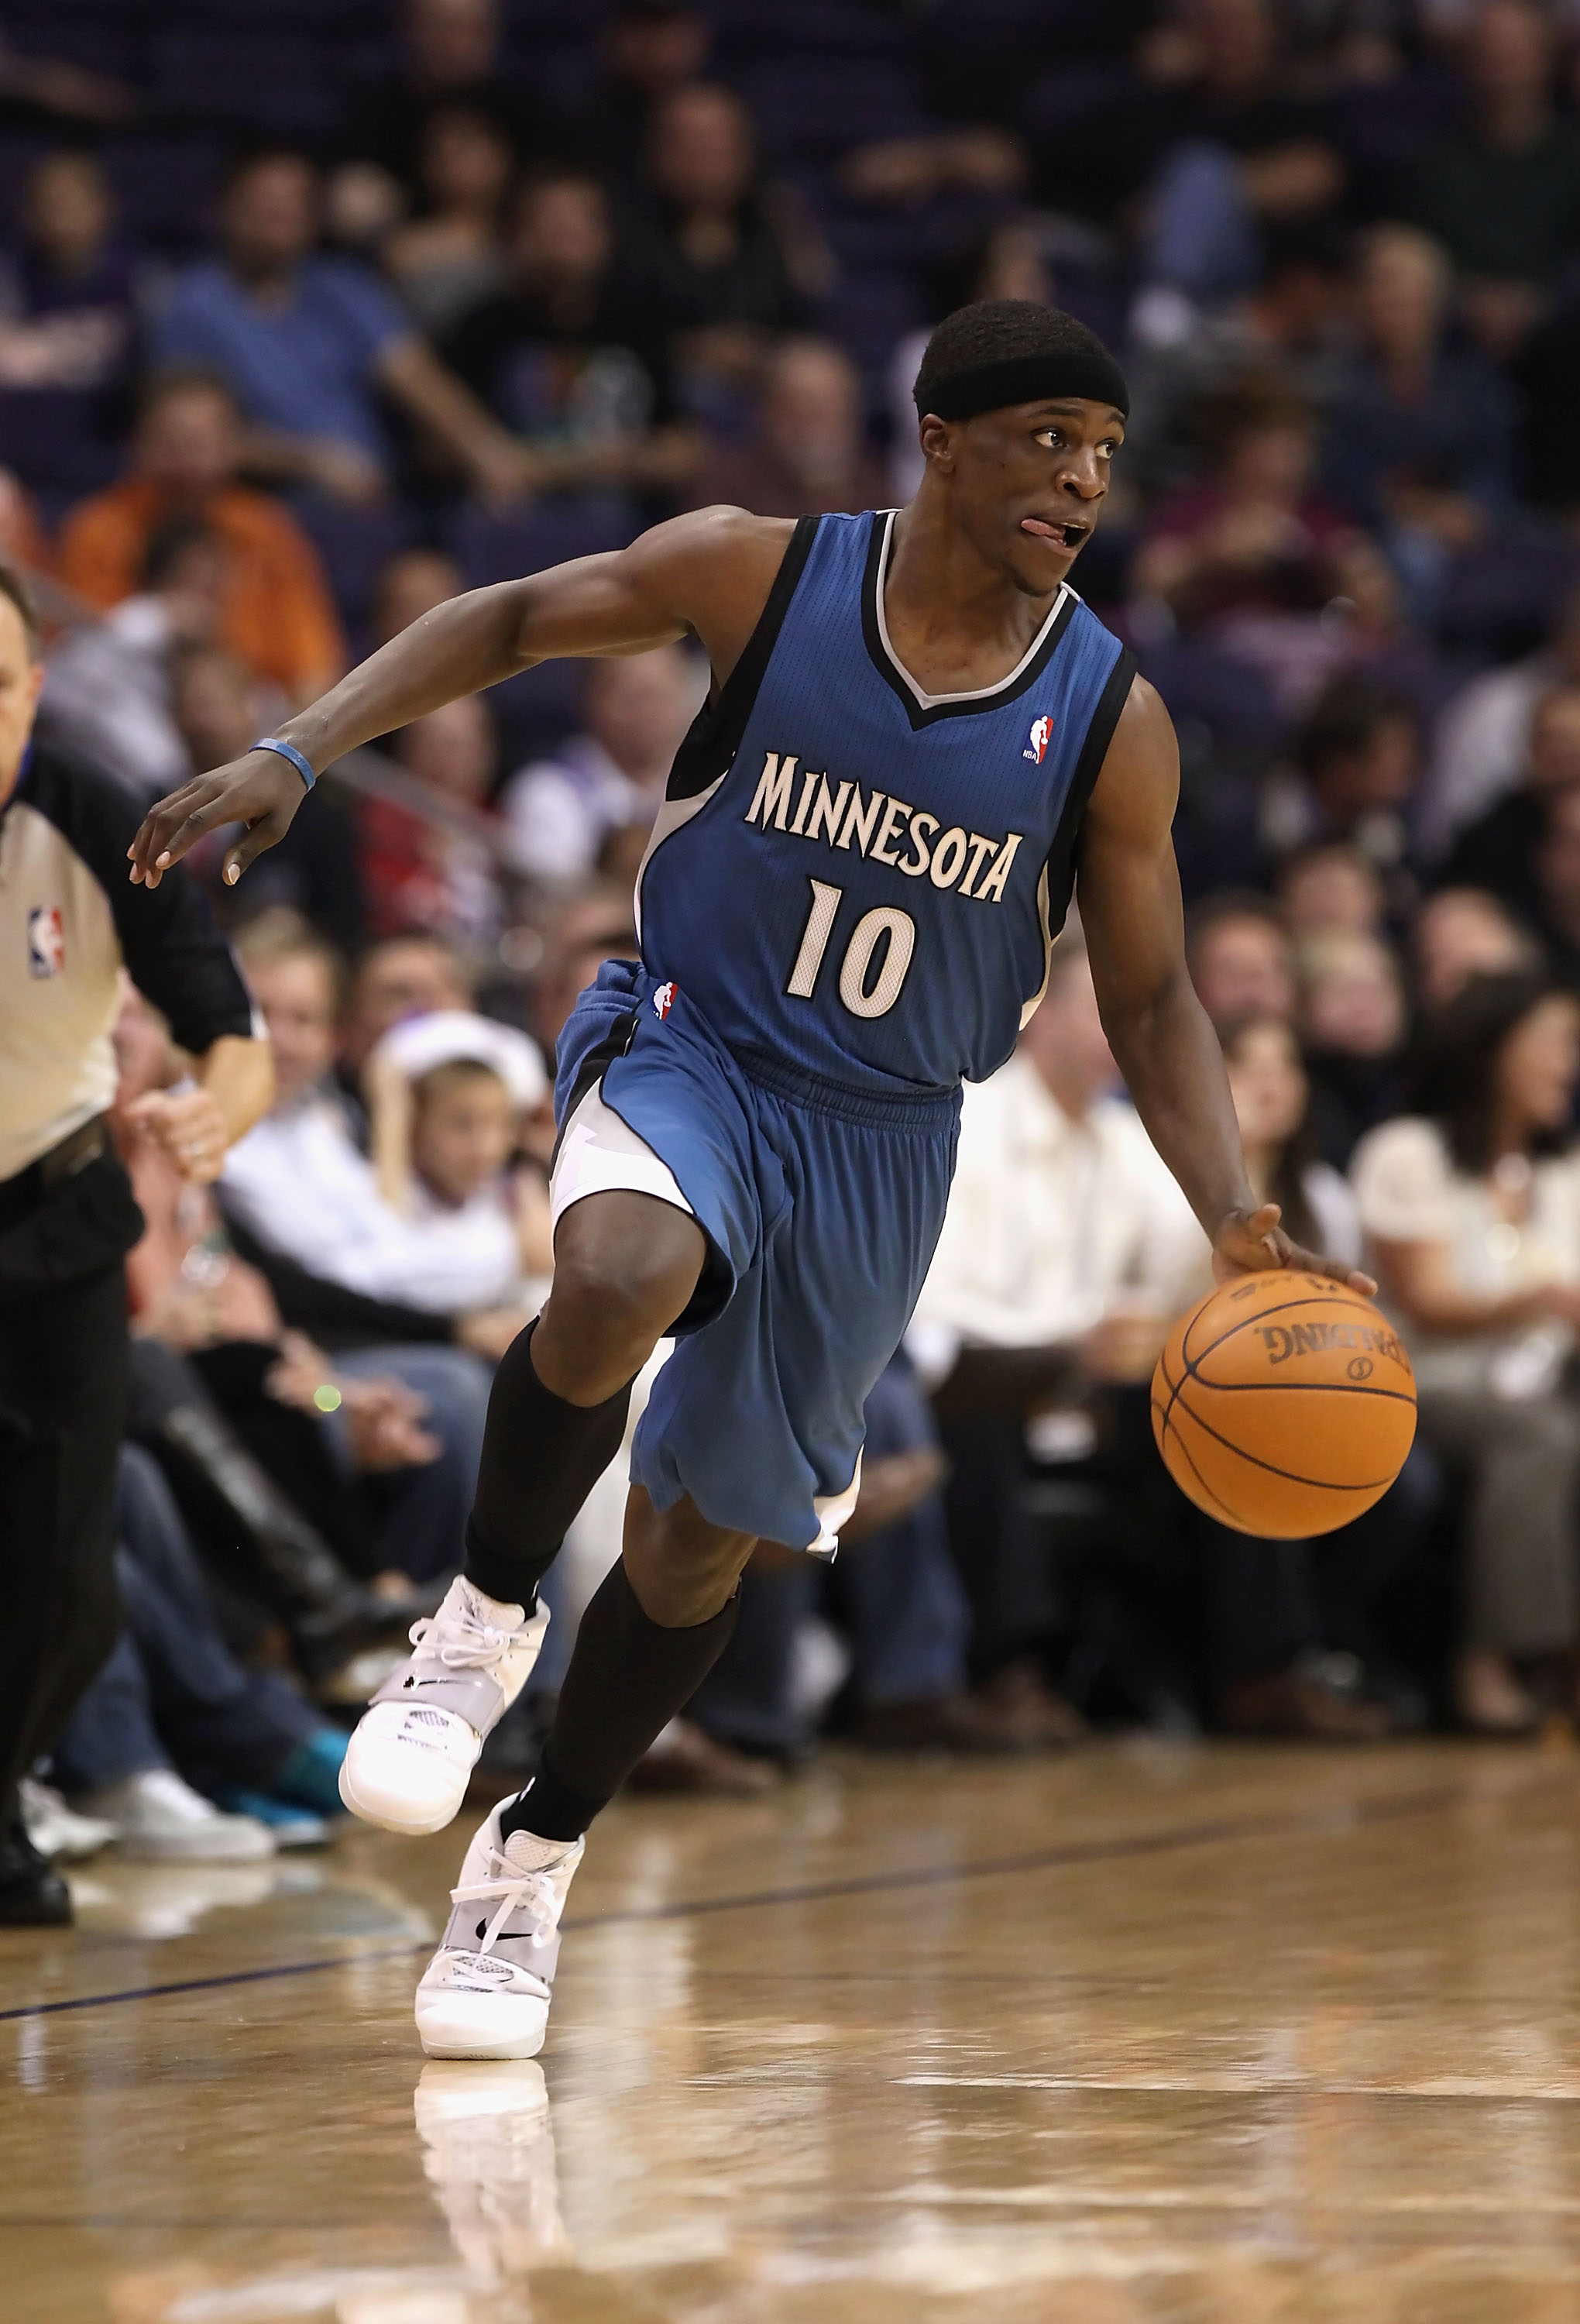 PHOENIX - DECEMBER 15:  Jonny Flynn #10 of the Minnesota Timberwolves moves the ball upcourt during the NBA game against the Phoenix Suns at US Airways Center on December 15, 2010 in Phoenix, Arizona. NOTE TO USER: User expressly acknowledges and agrees t